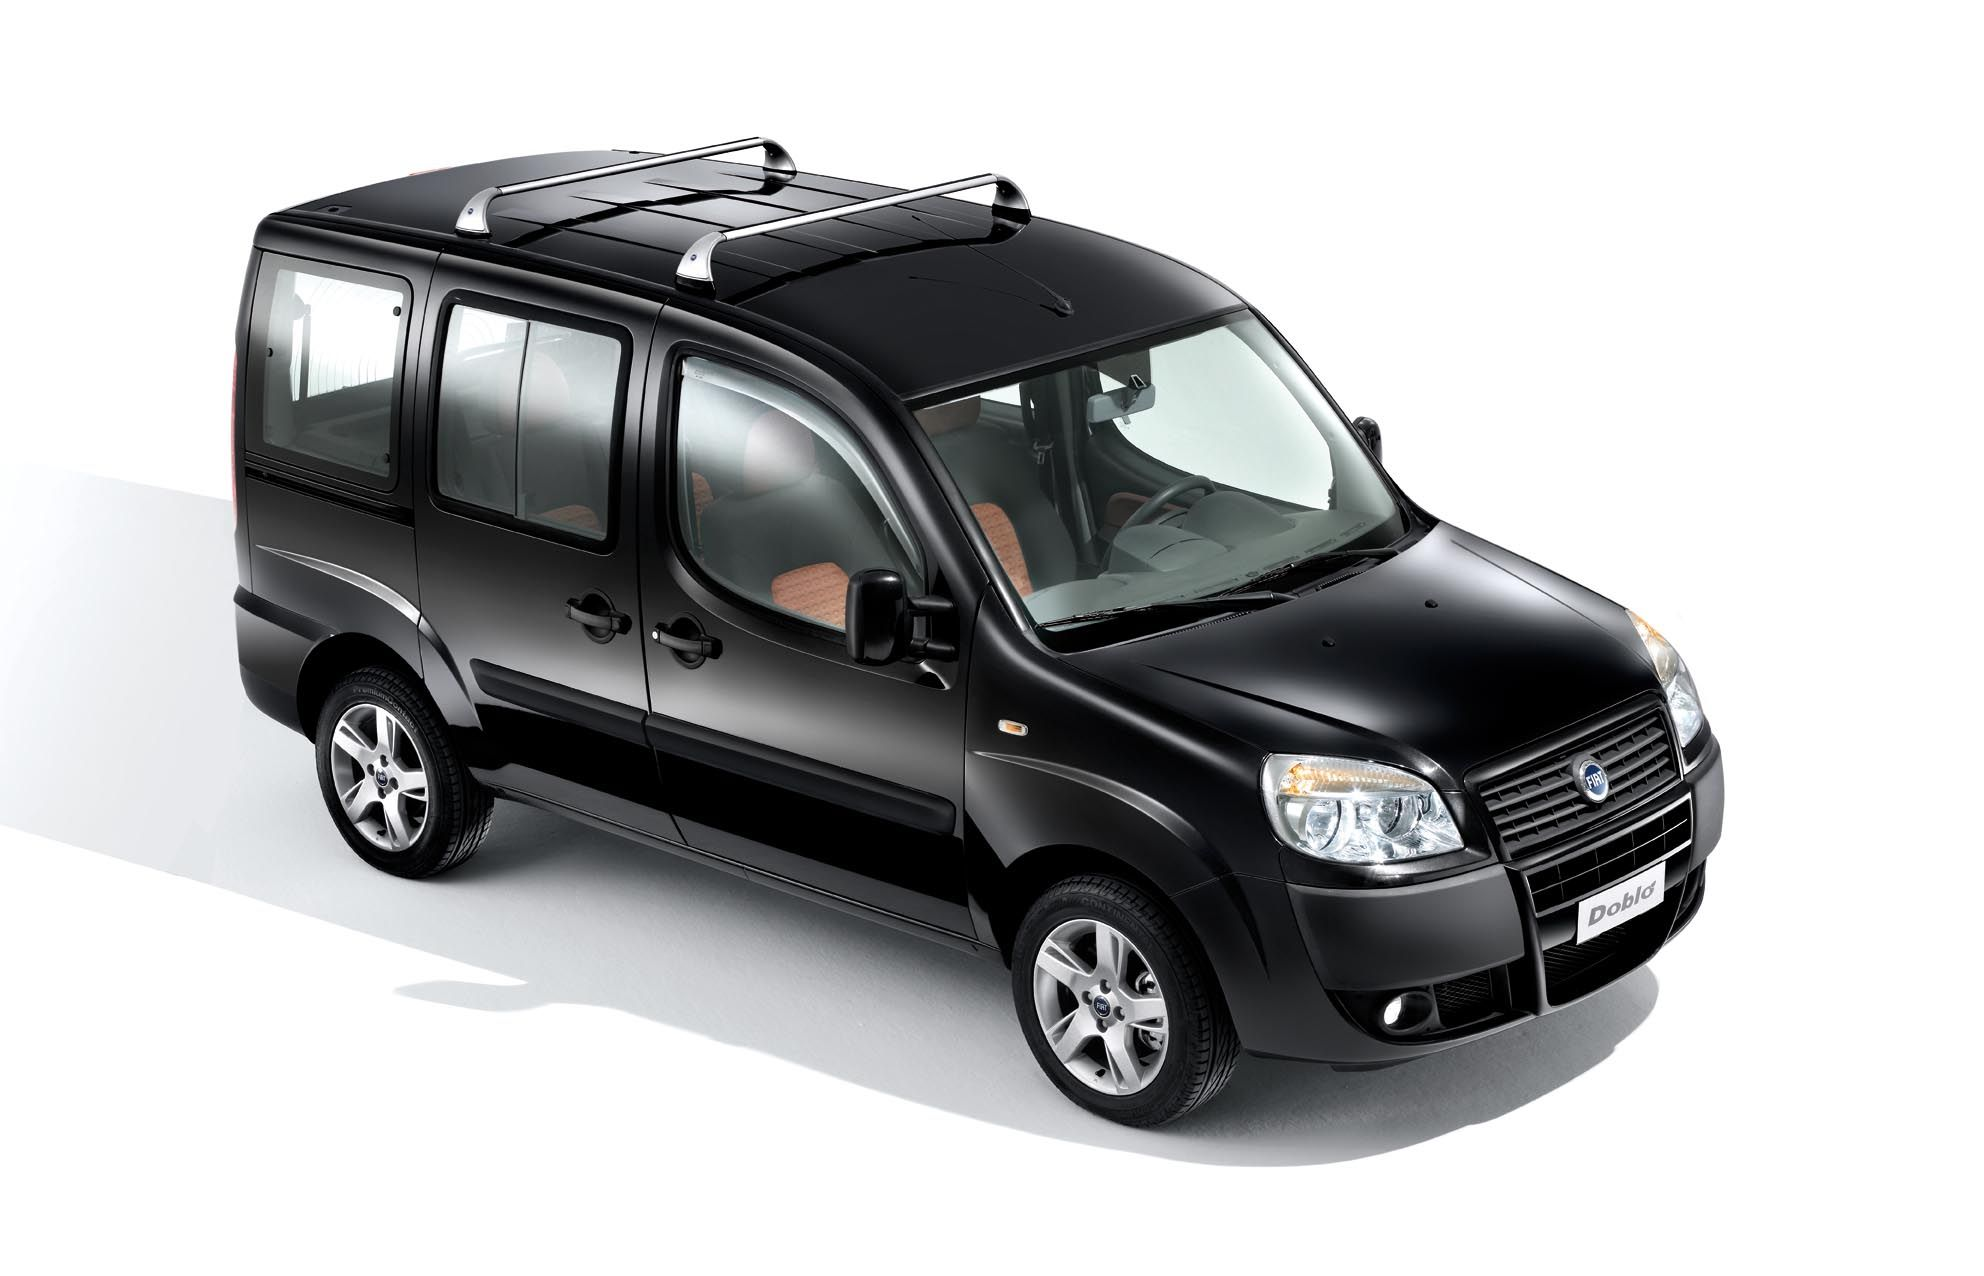 fiat doblo cargo, maxi and new doblo xl the best load volume in